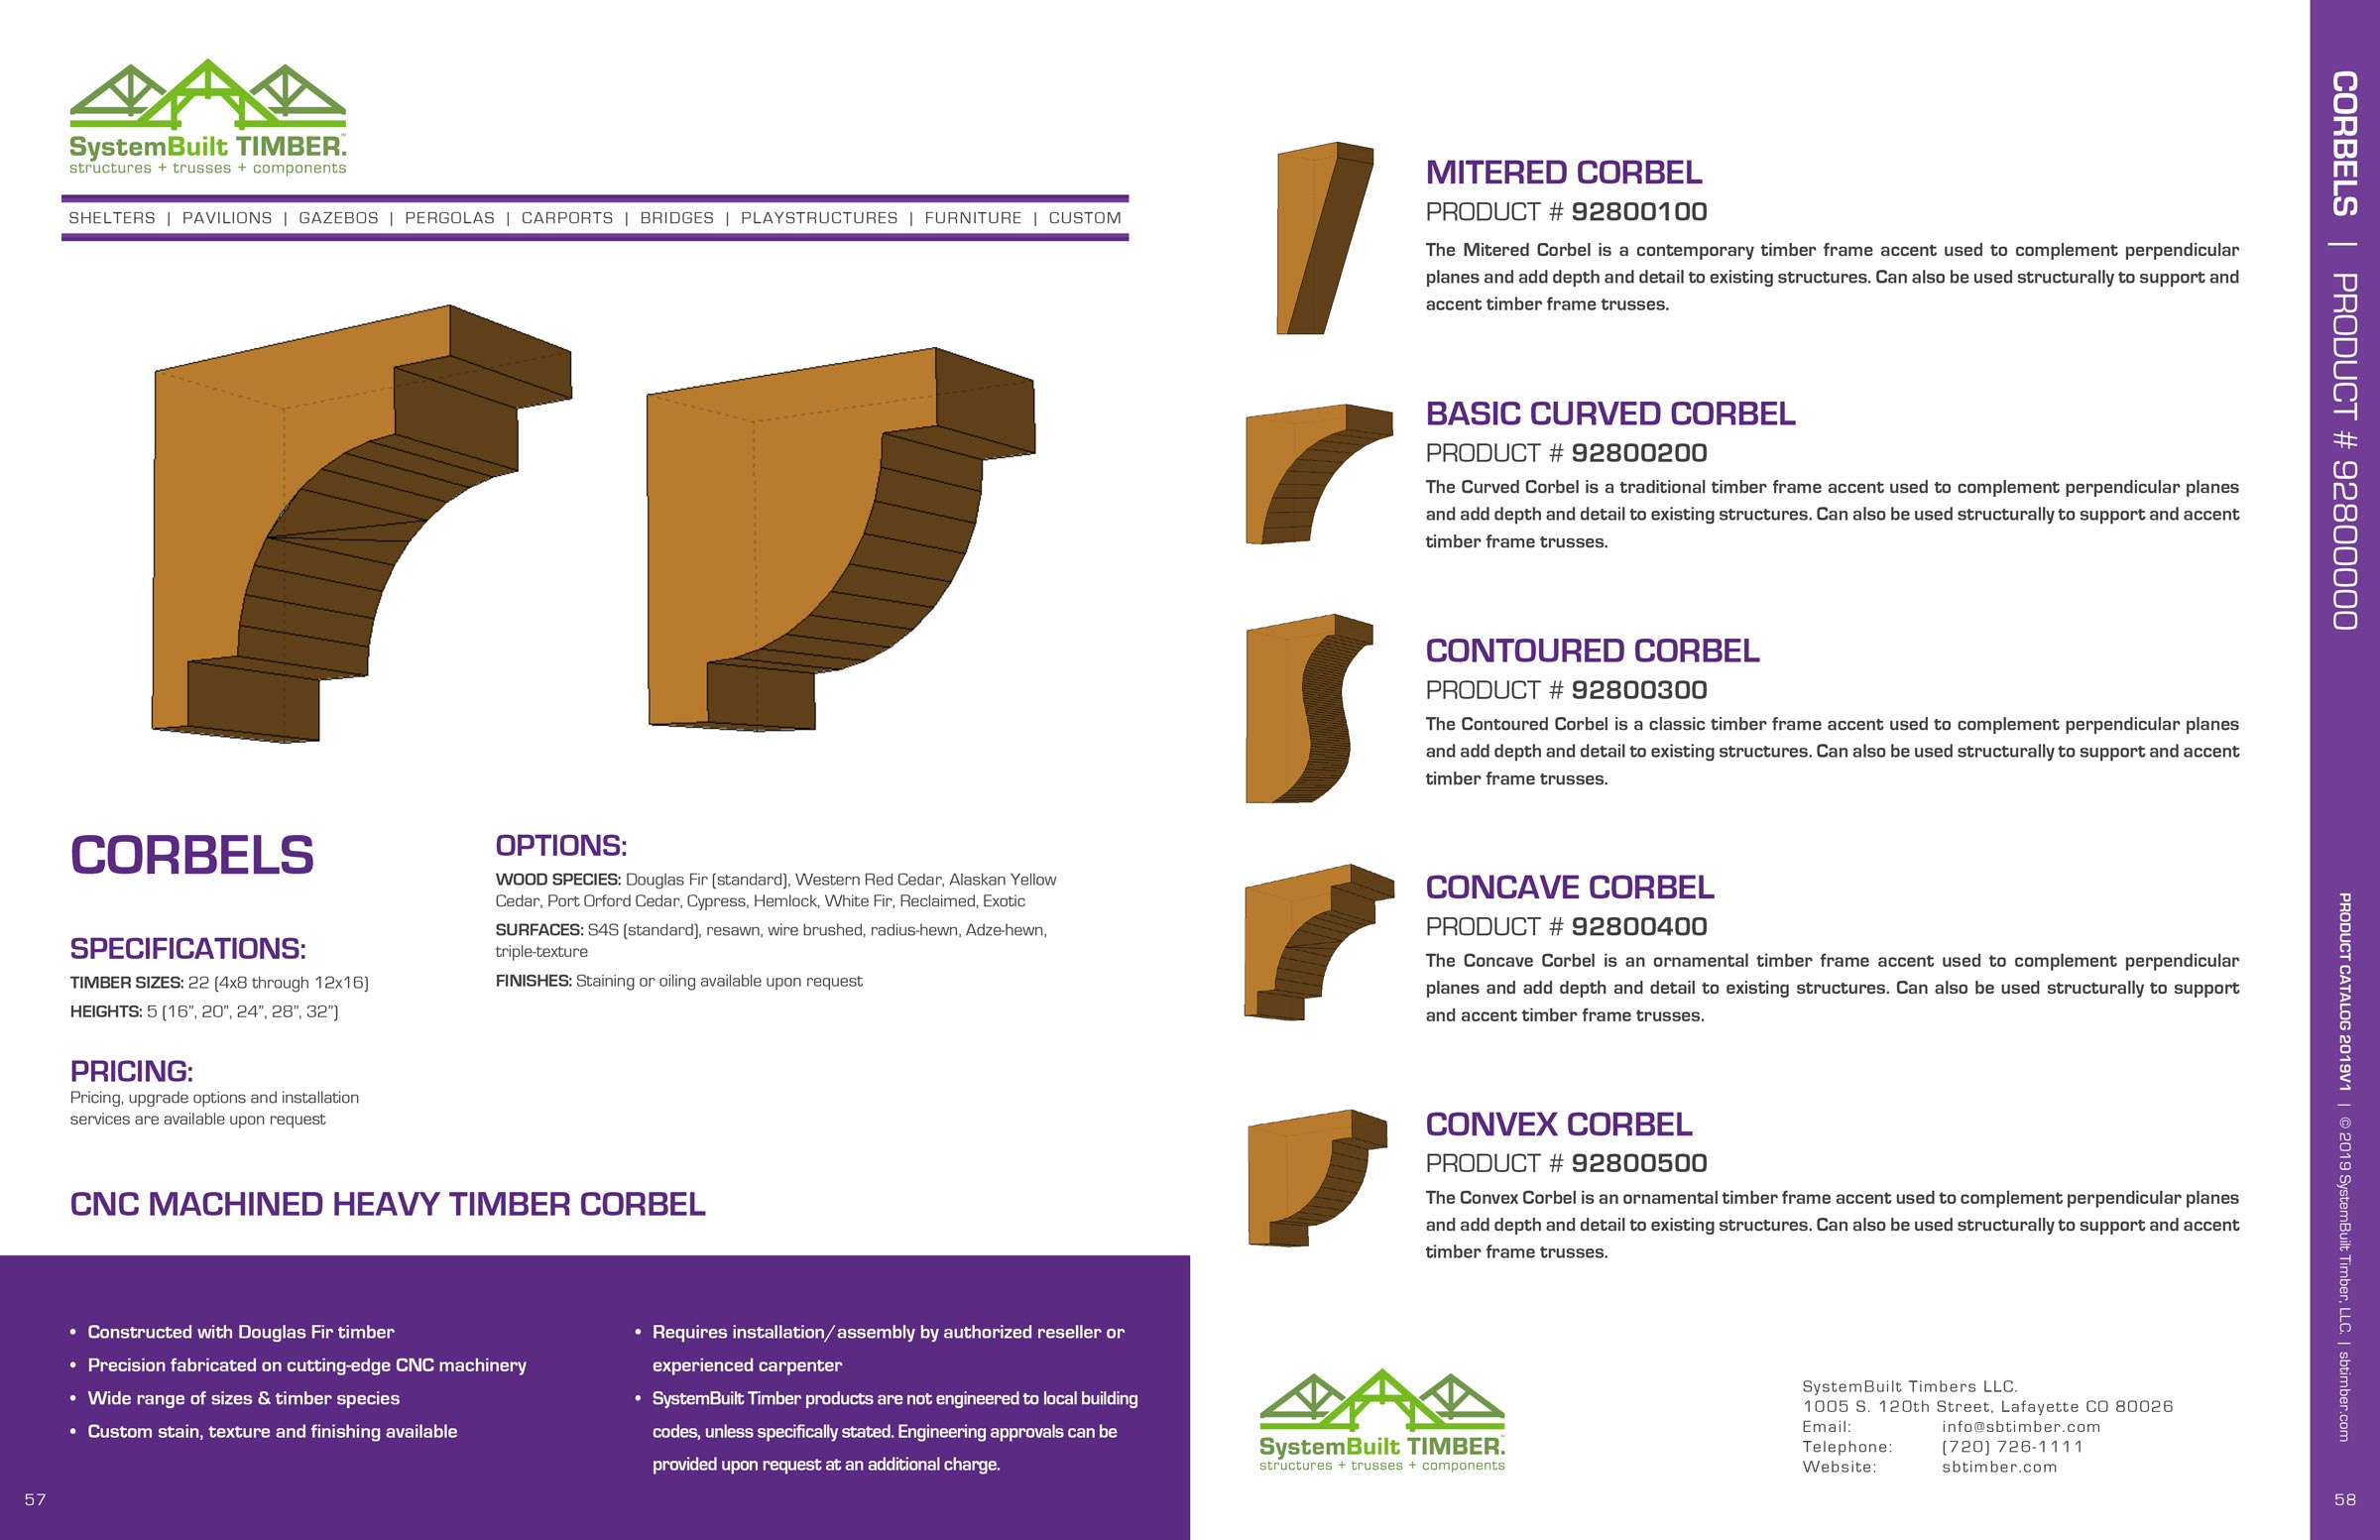 Corbels - SystemBuilt Timber